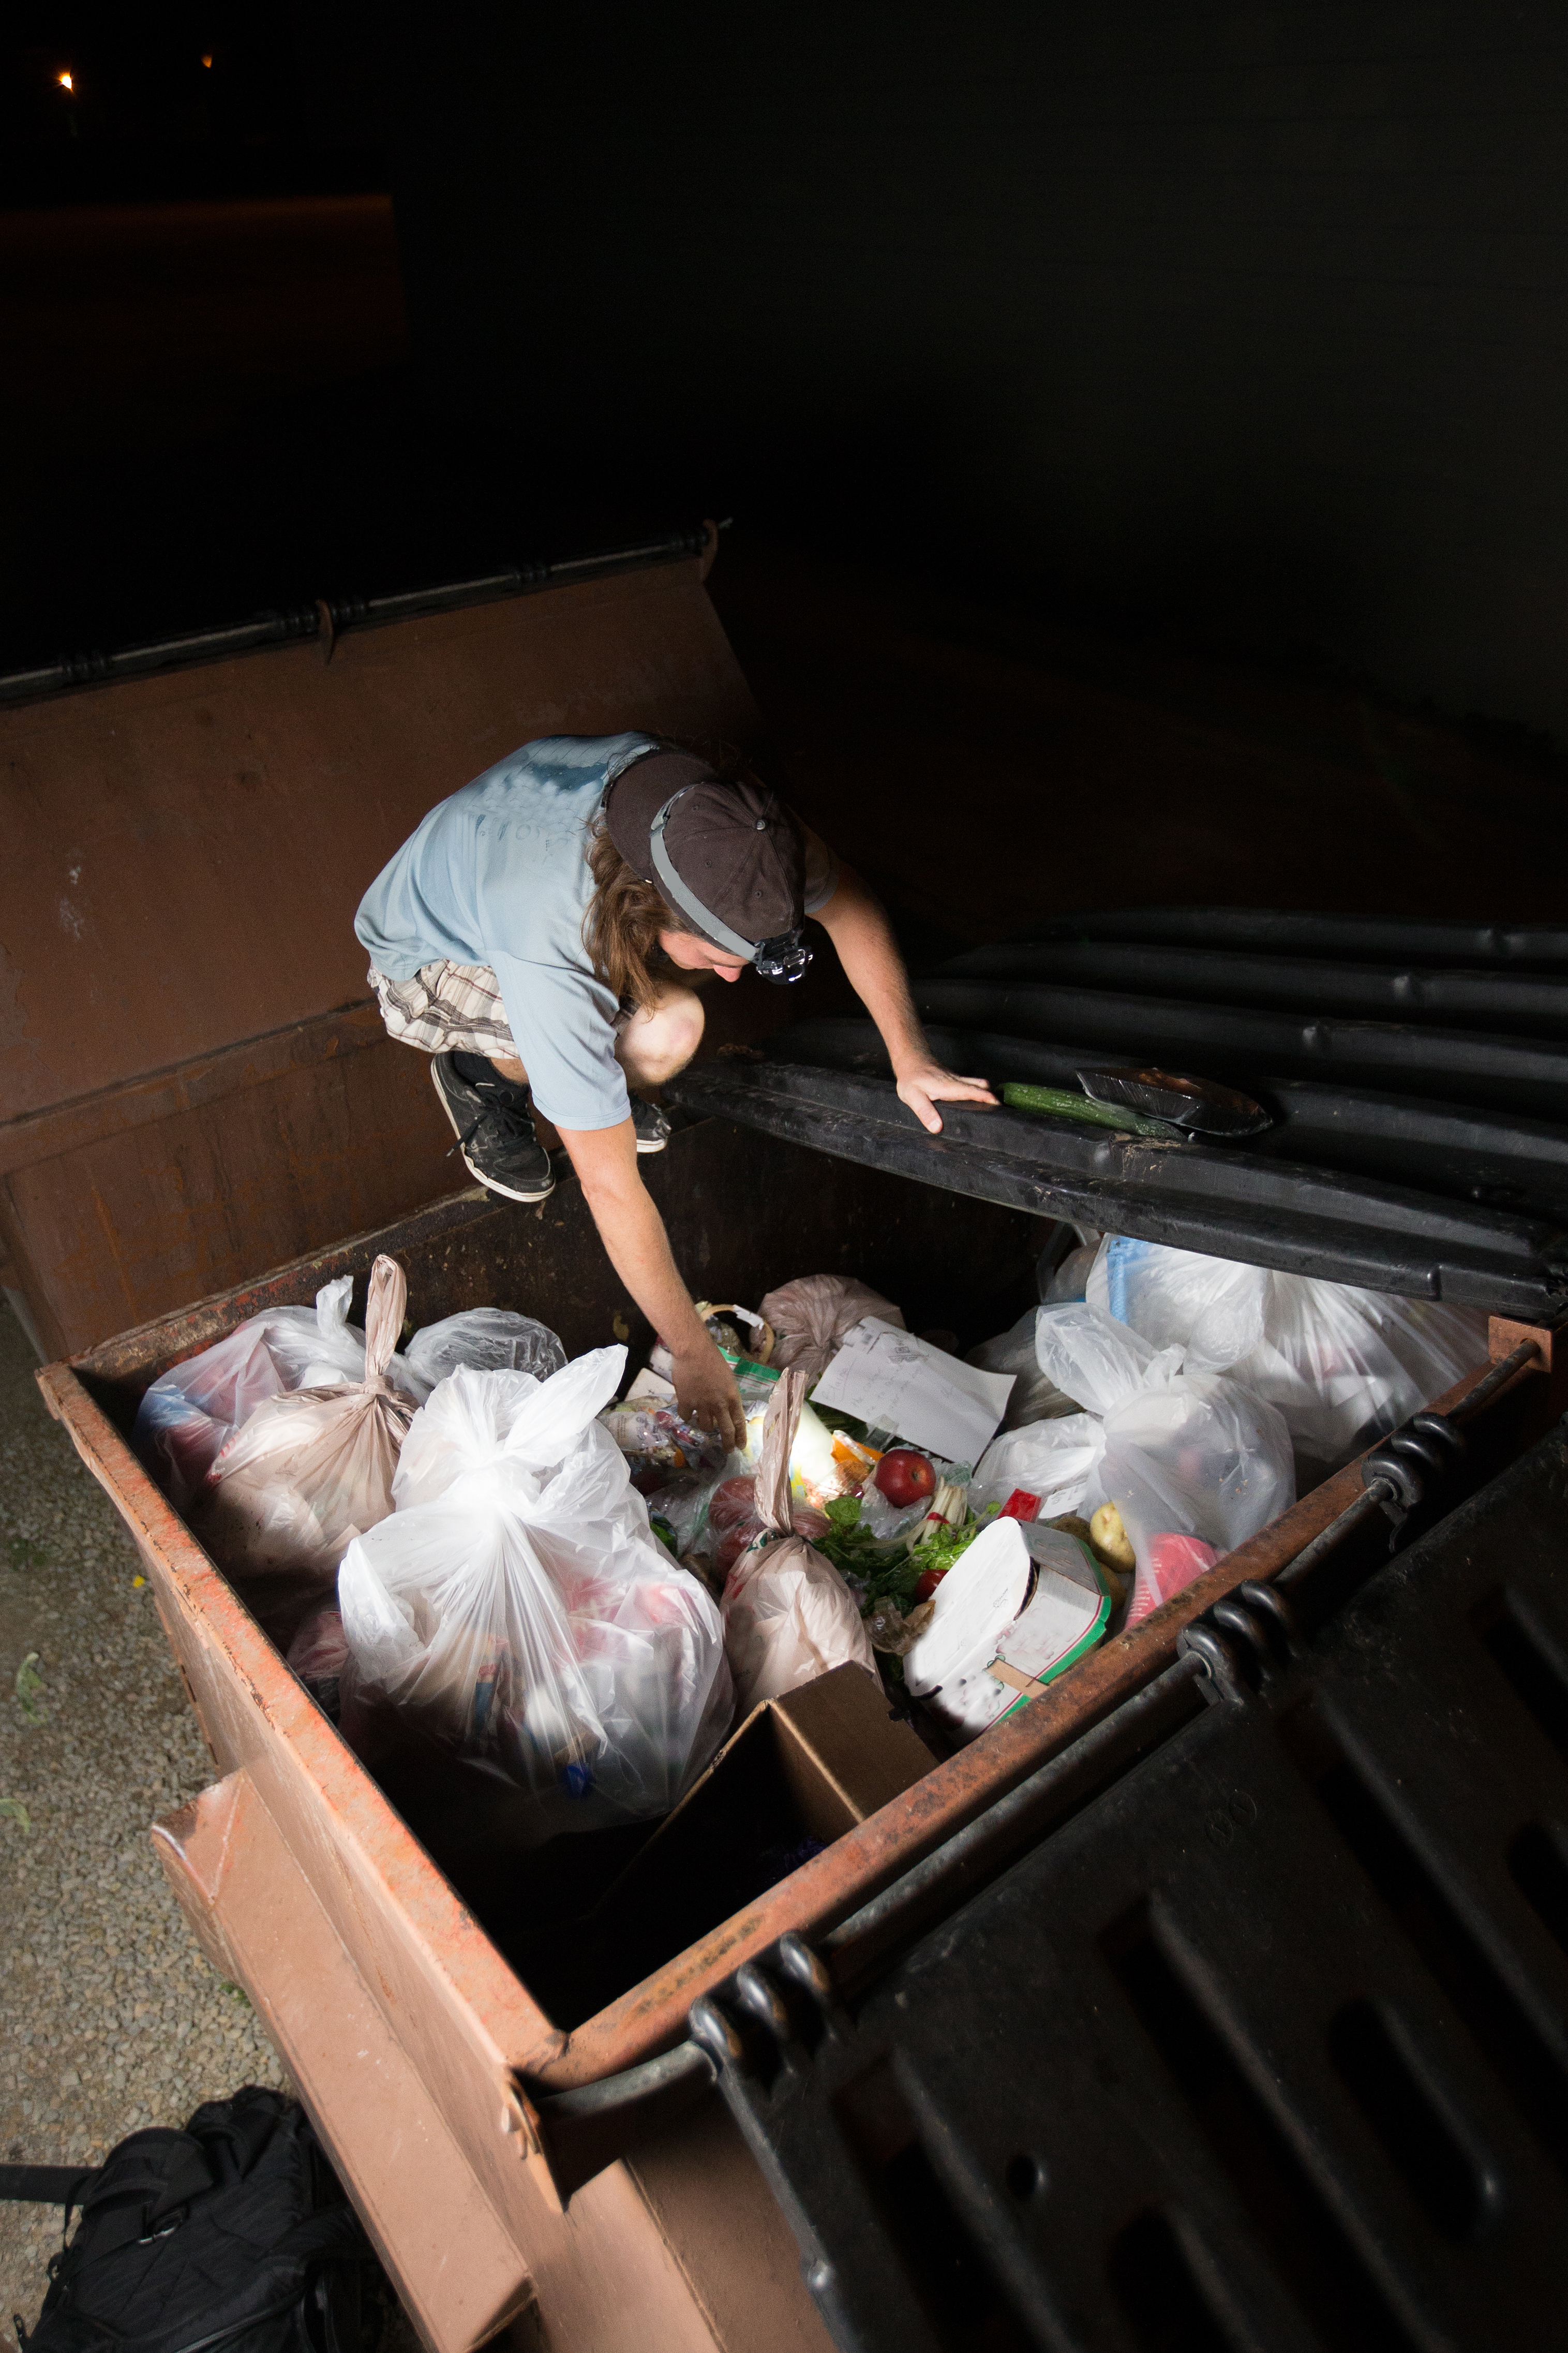 dumpster diving with a headlamp